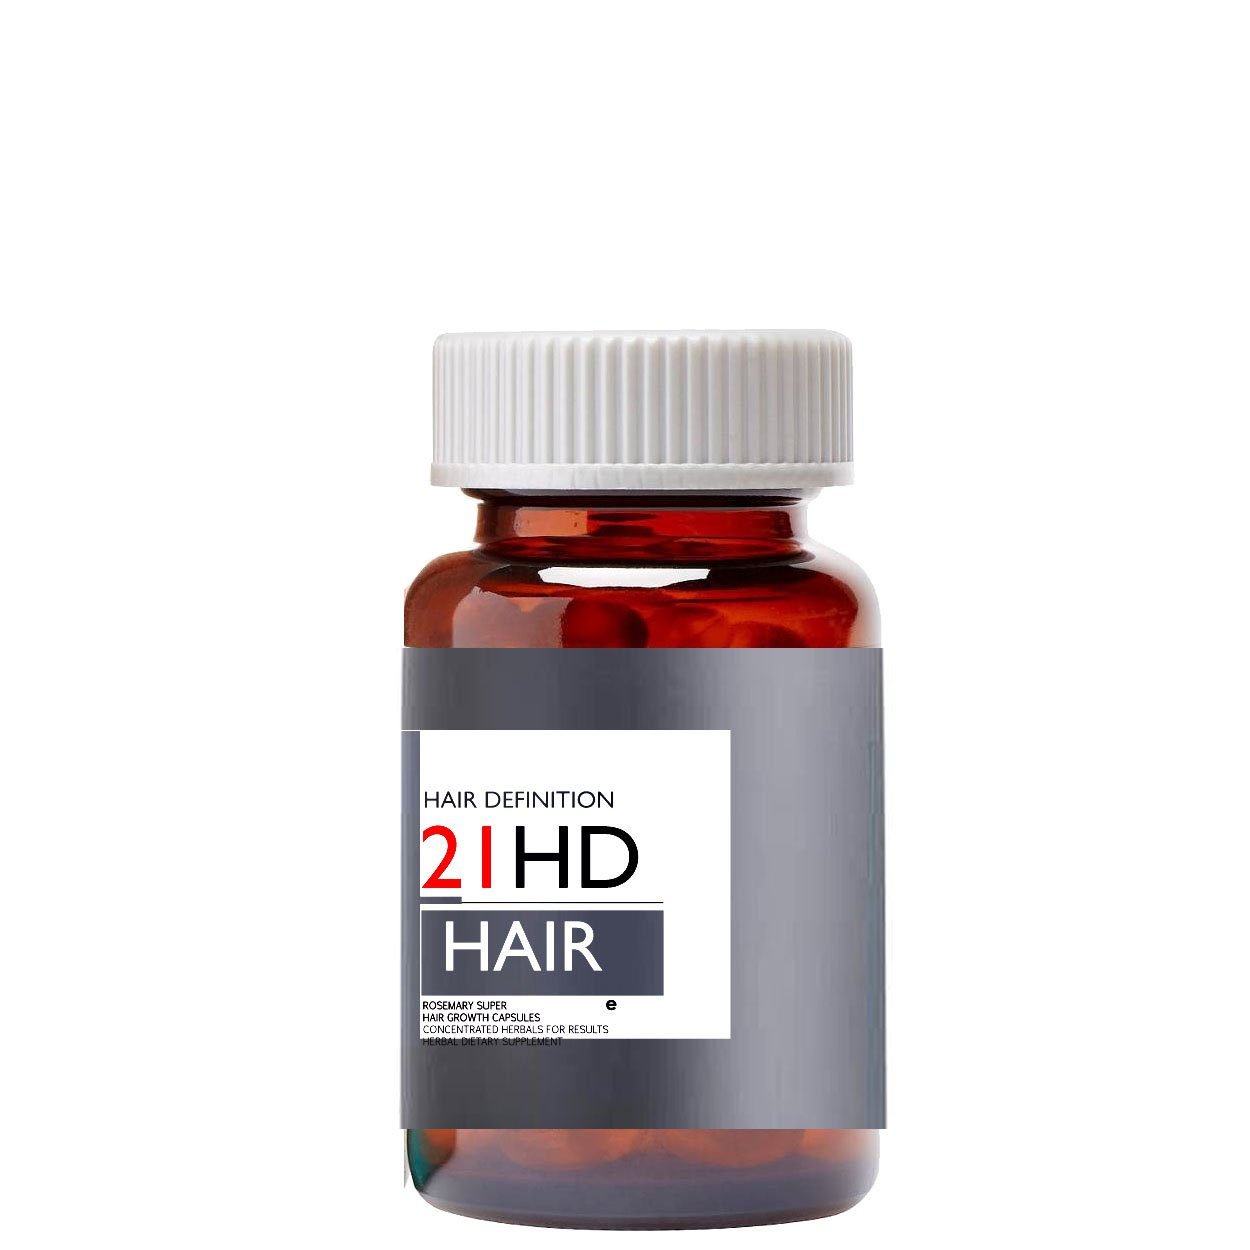 Rosemary Super Hair Growth Capsules, Extra Strength